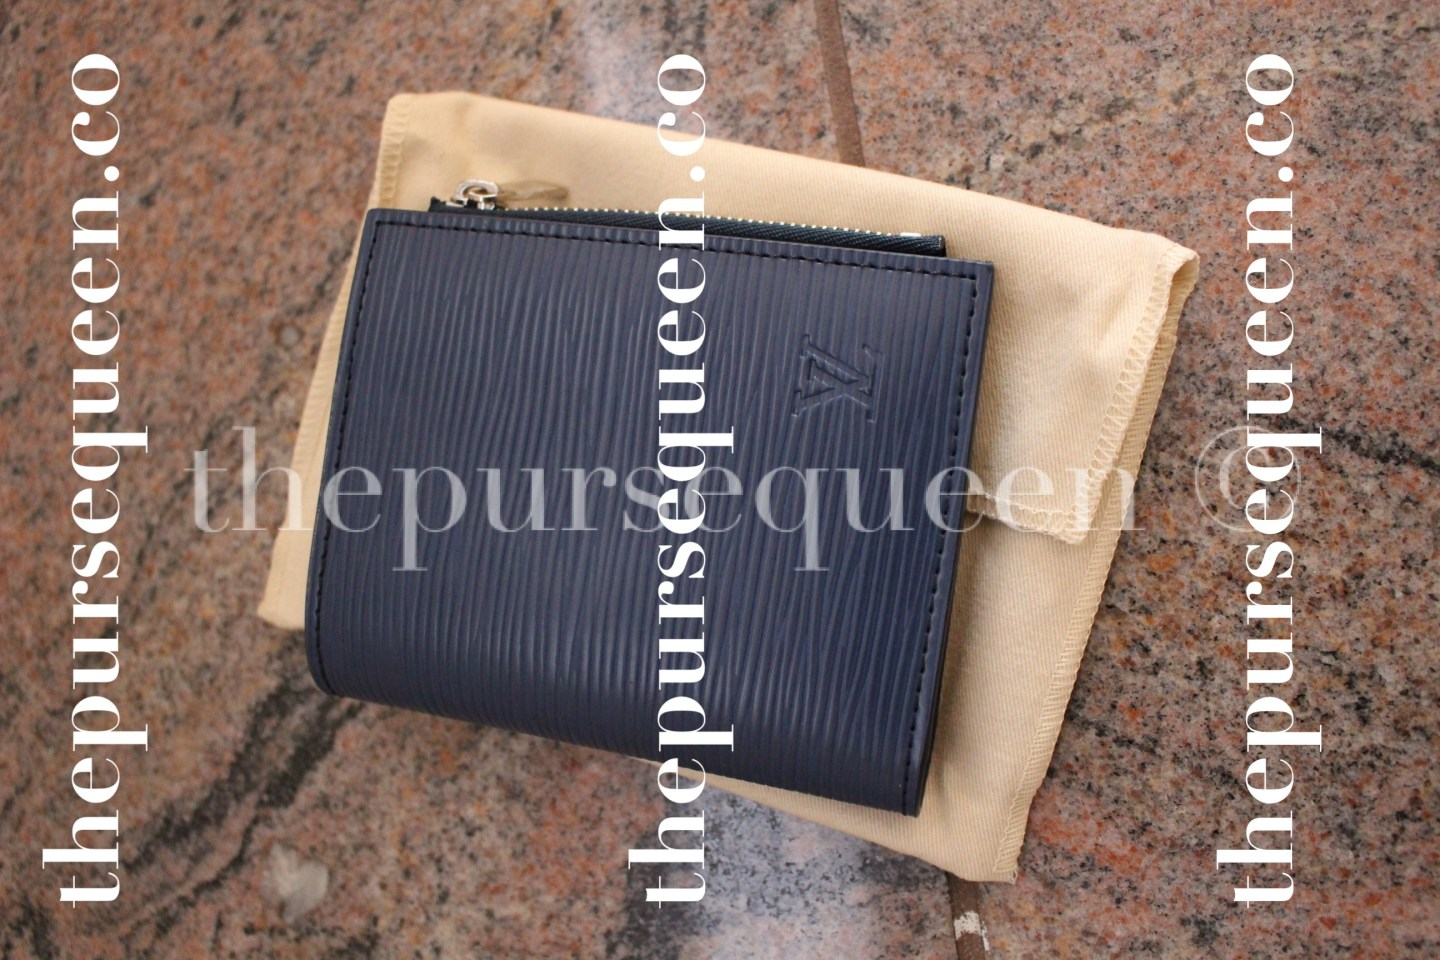 Louis Vuitton Smart Epi Leather Replica Wallet Top View